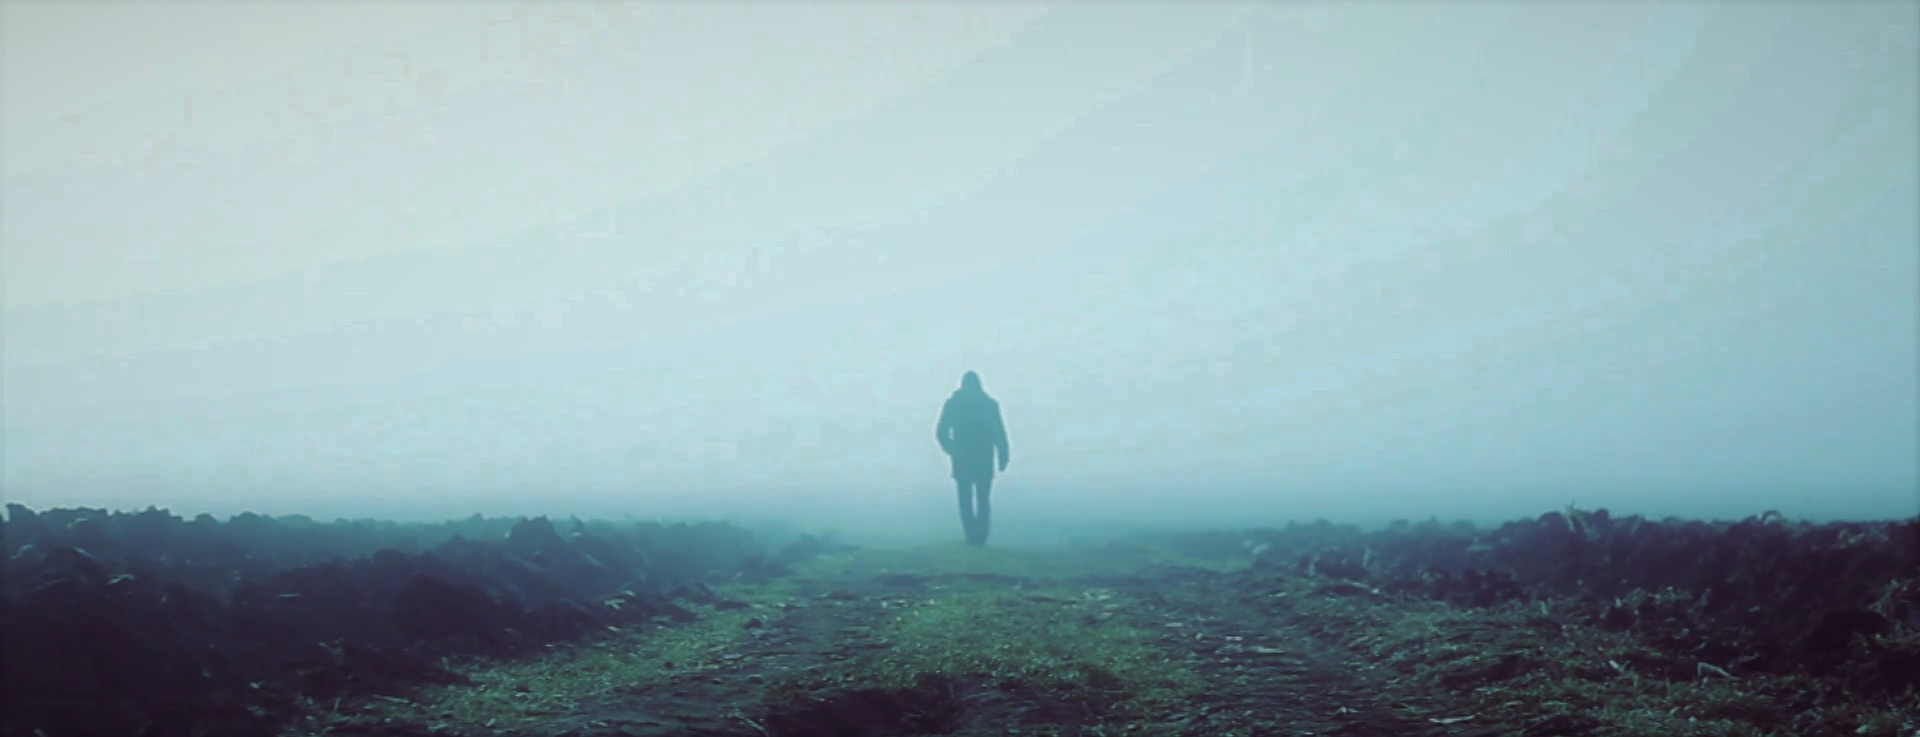 lonely-man-walking-into-a-foggy-field_hchsjbije_thumbnail-full02.png